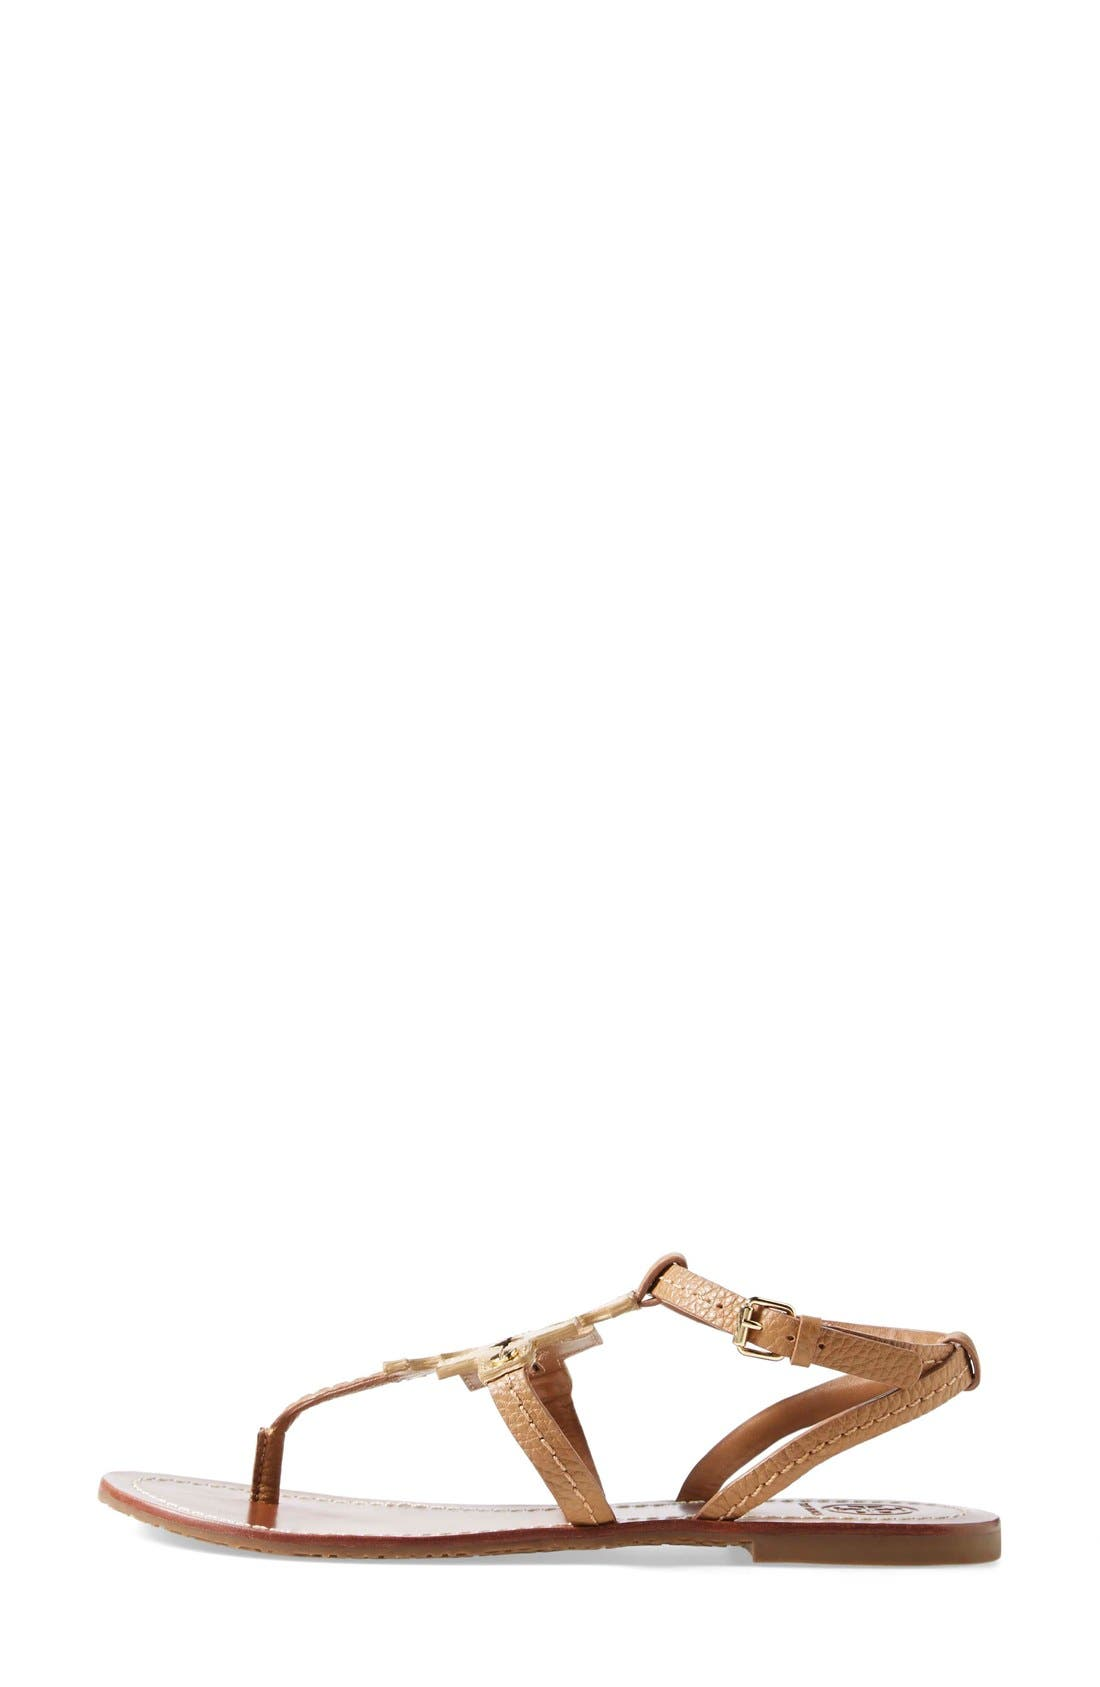 Alternate Image 4  - Tory Burch 'Chandler' Leather Sandal (Women)